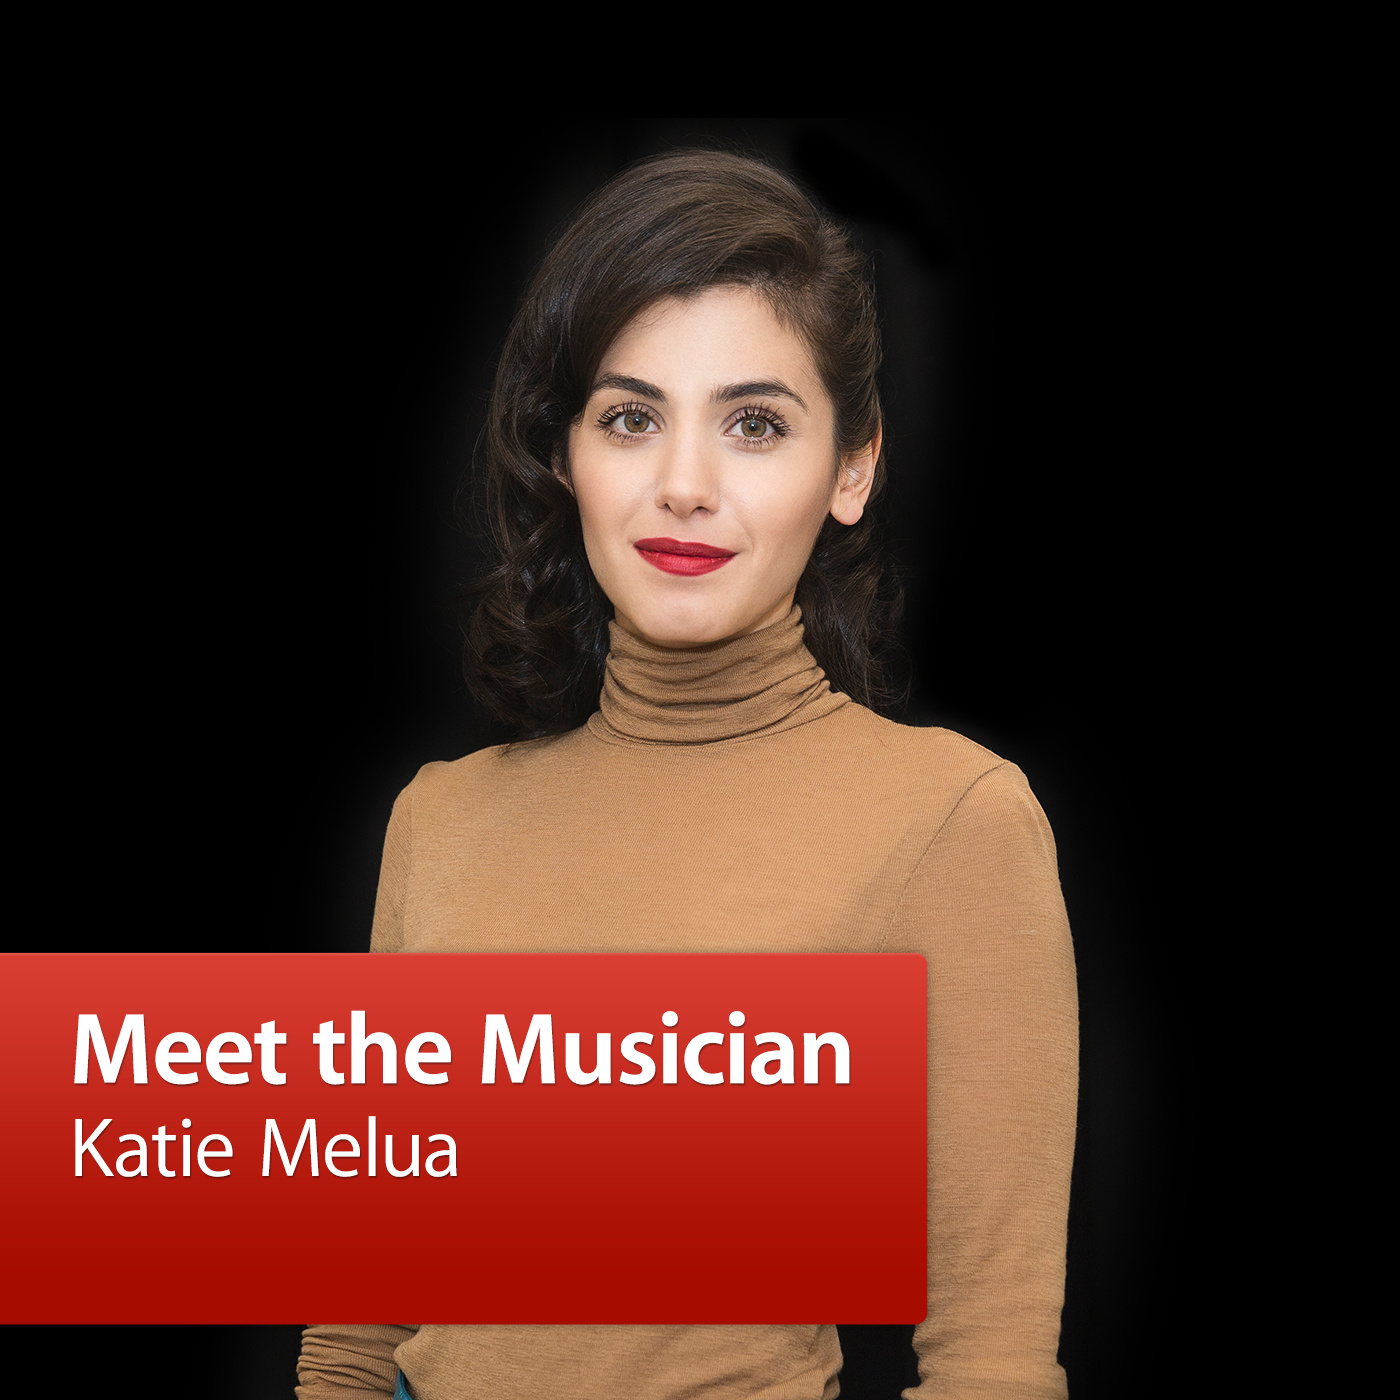 Katie Melua: Meet the Musician